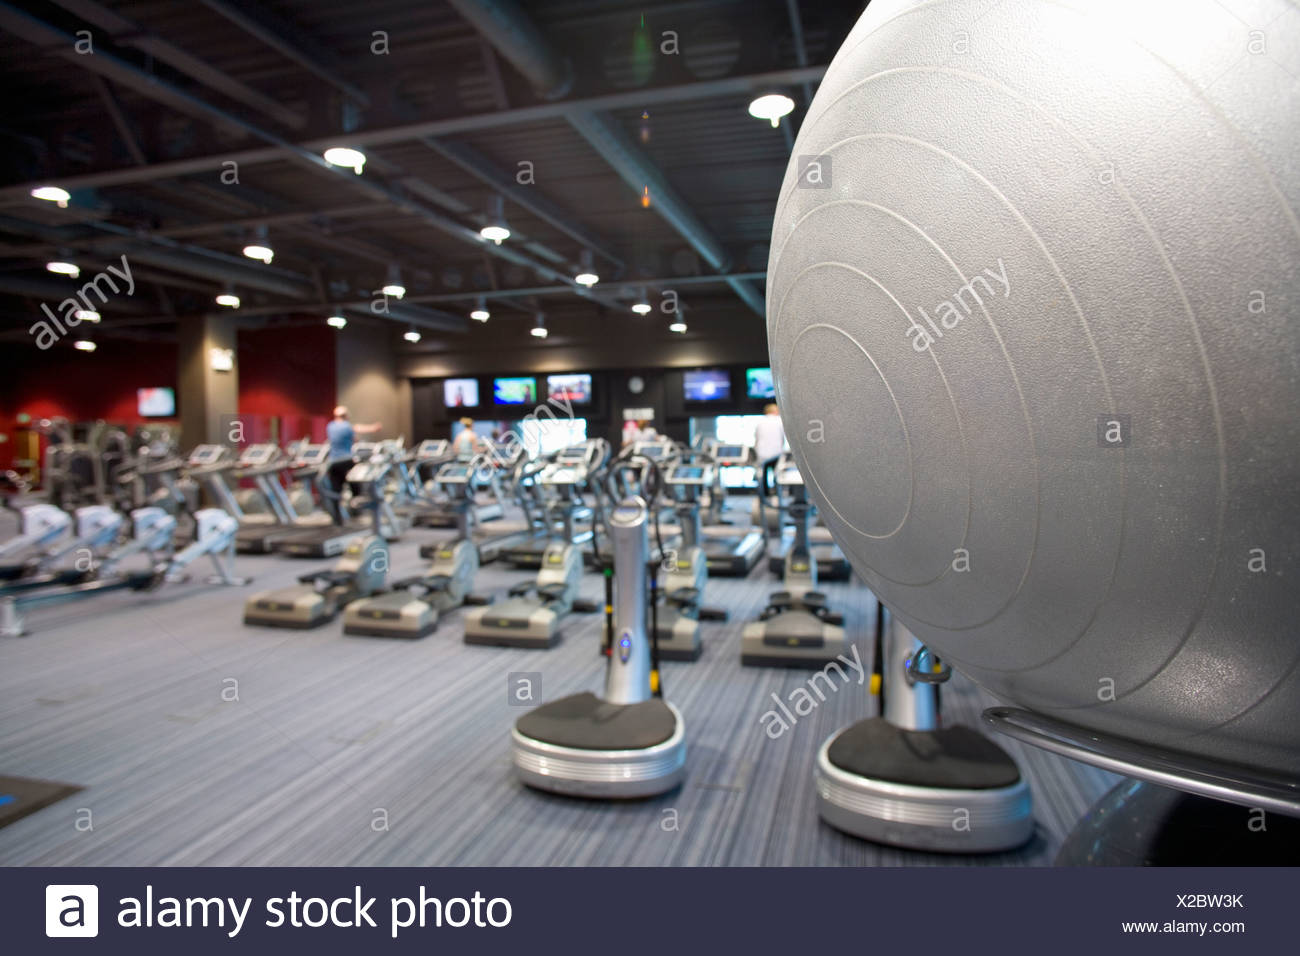 Fitness ball and exercise equipment in health club - Stock Image